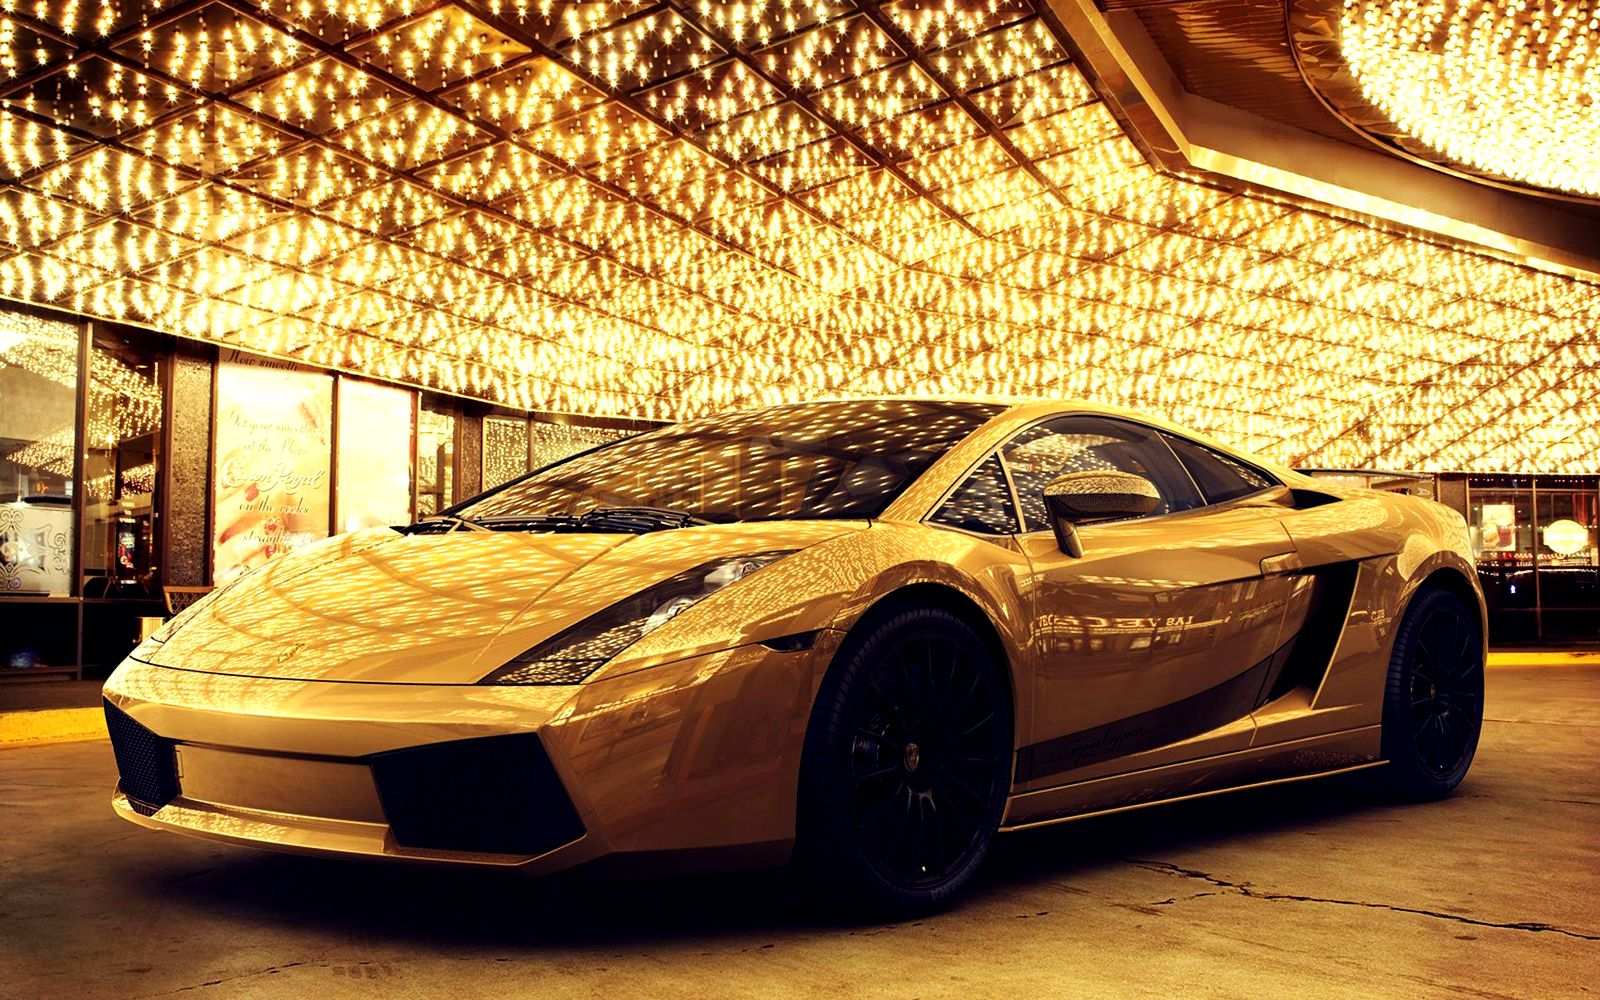 Gold Car | Golden Lamborghini Gallardo Luxery Car HD Wallpaper    LGMSports.com